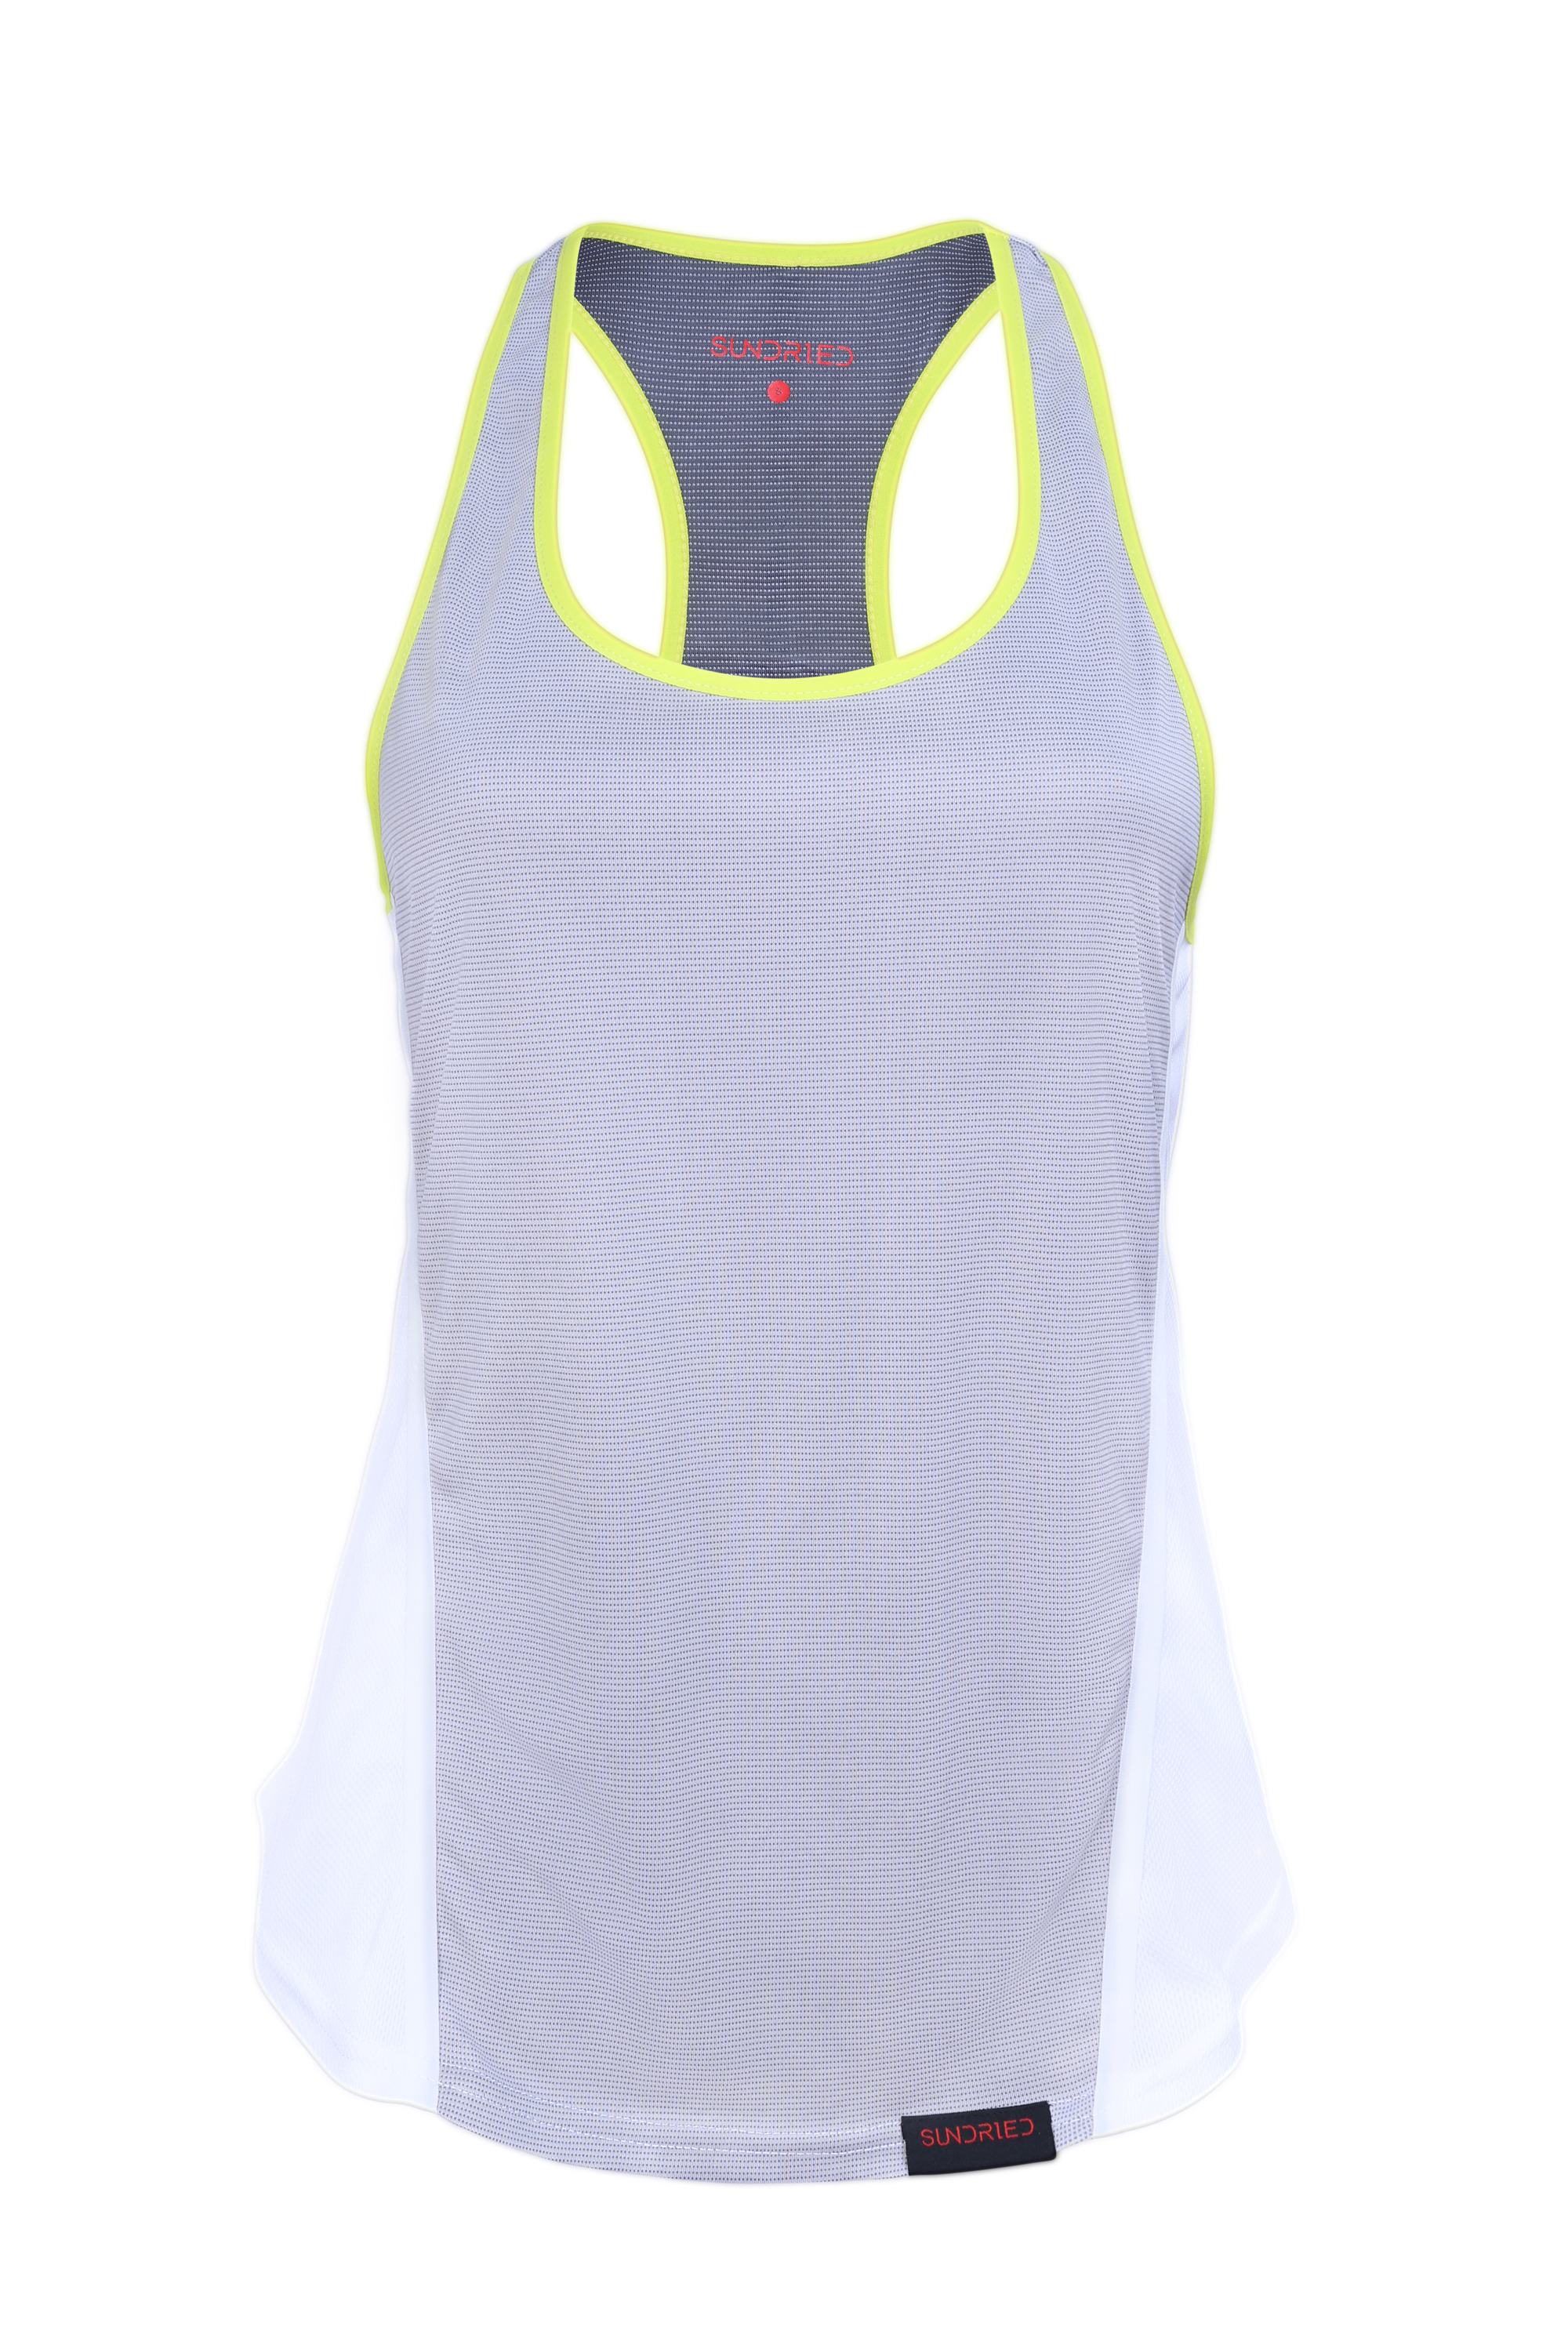 Sundried ethical sportswear running top